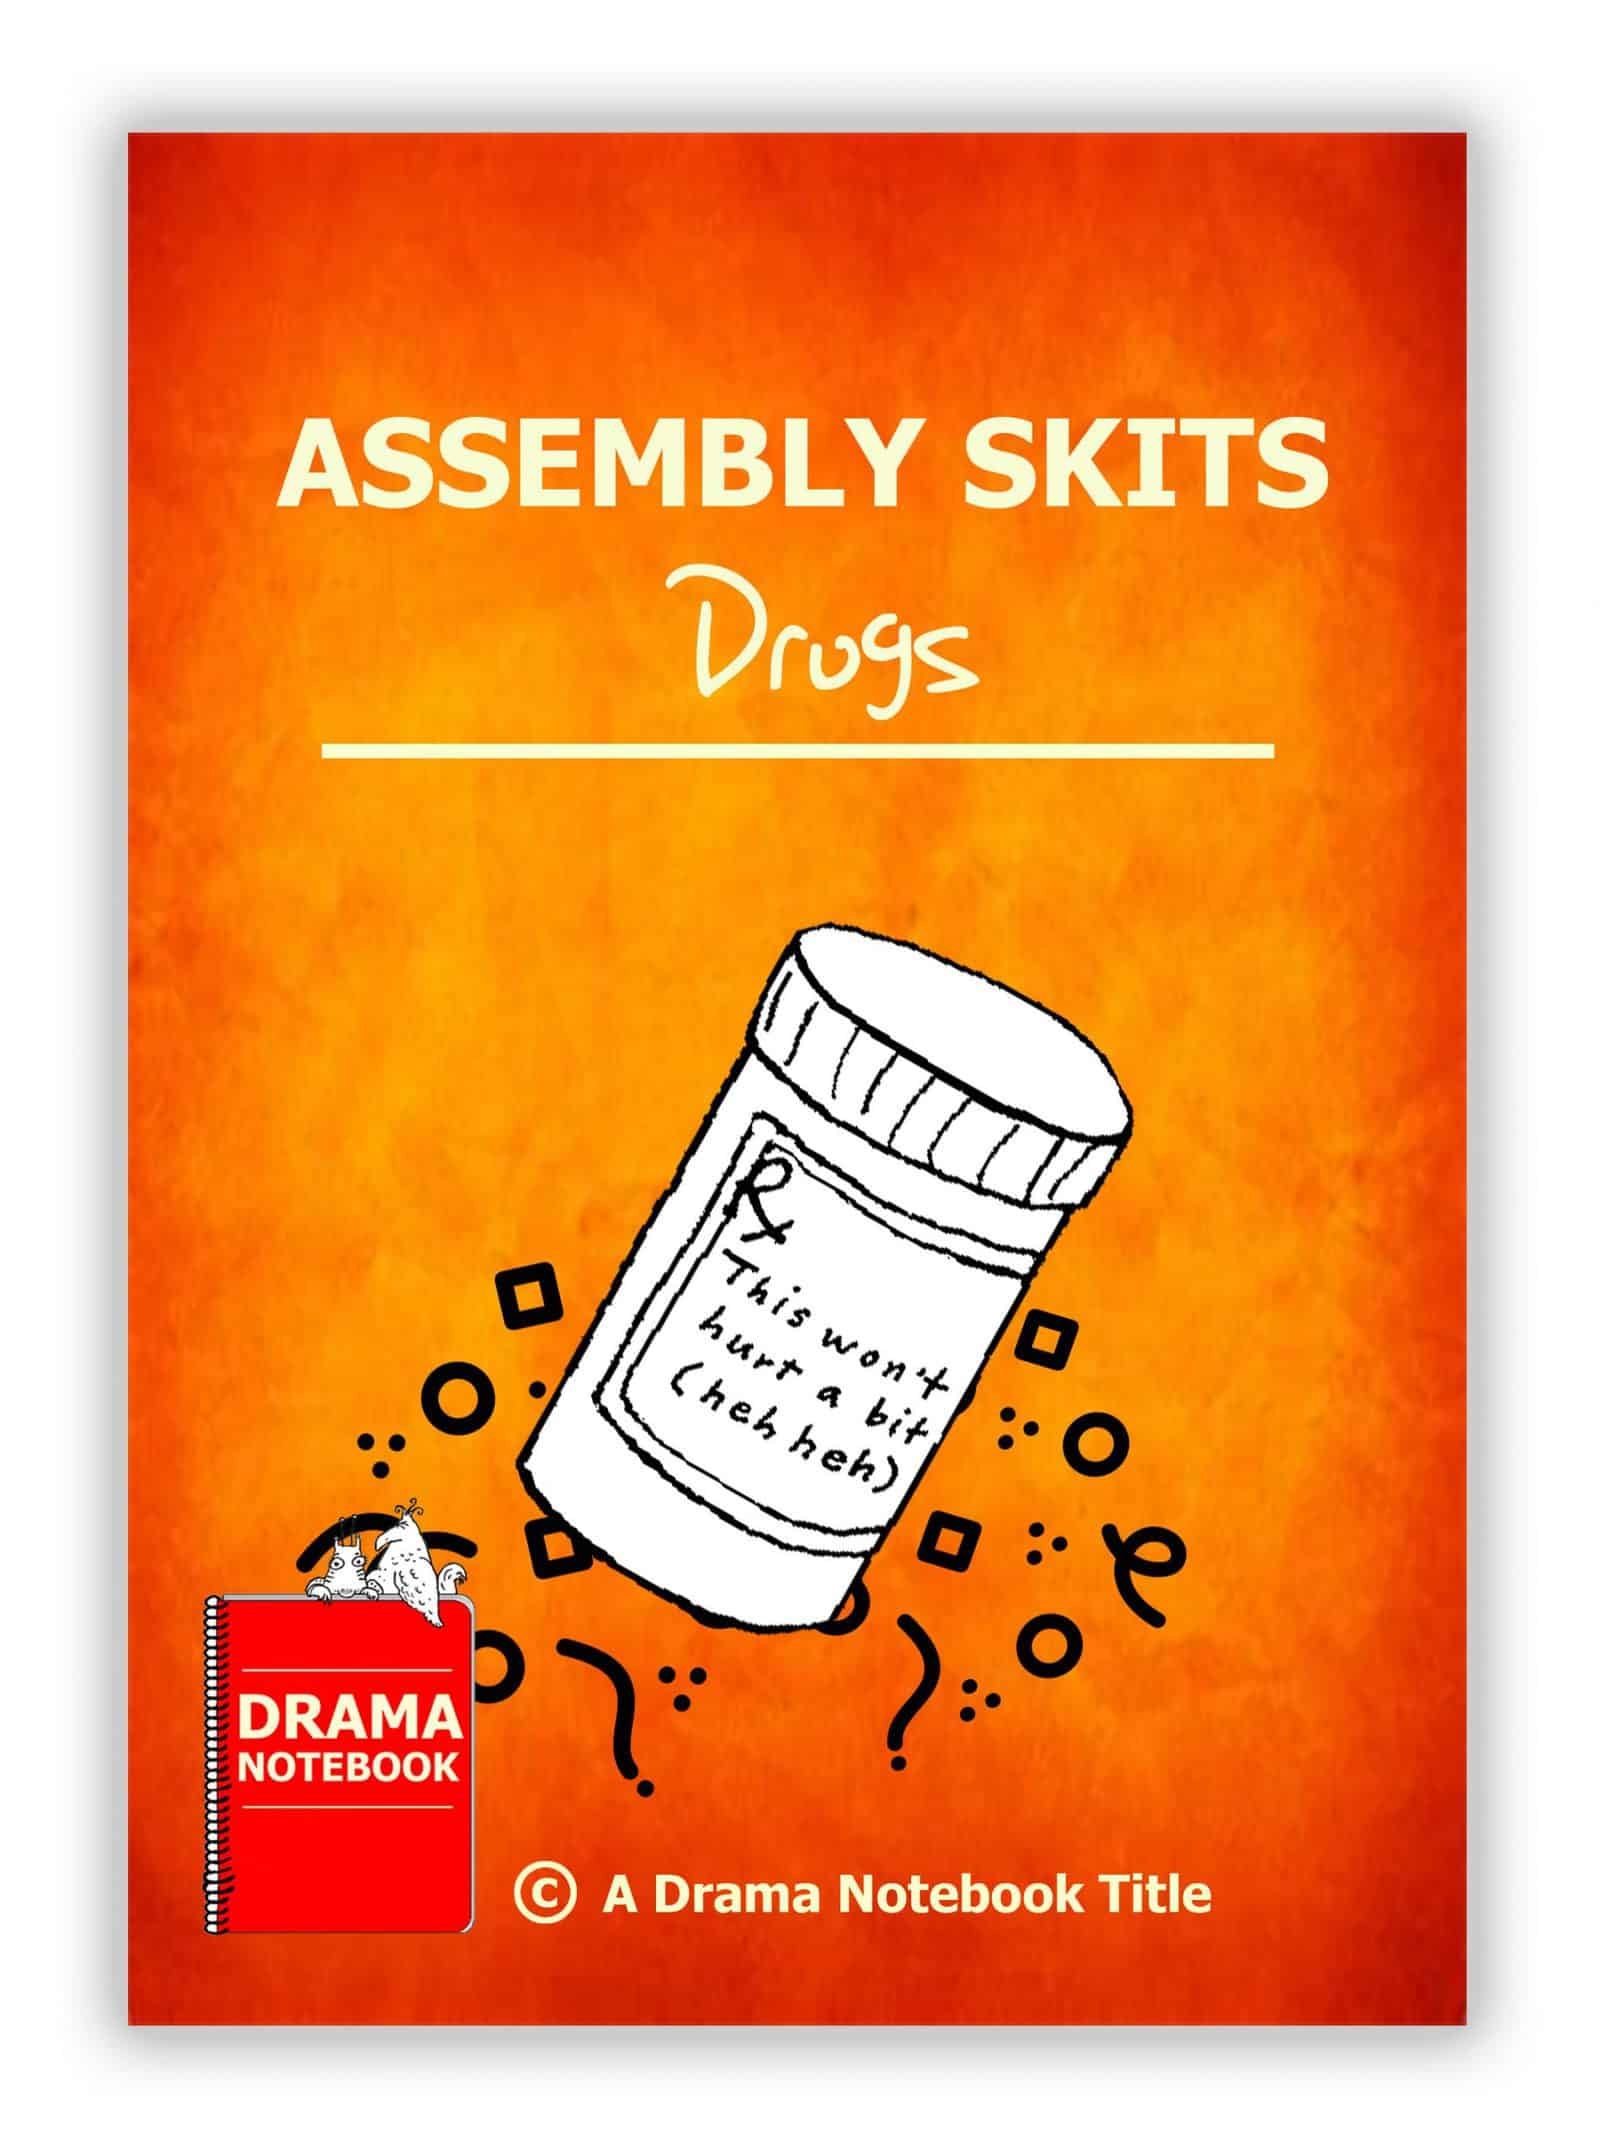 Assembly Skits-Drugs